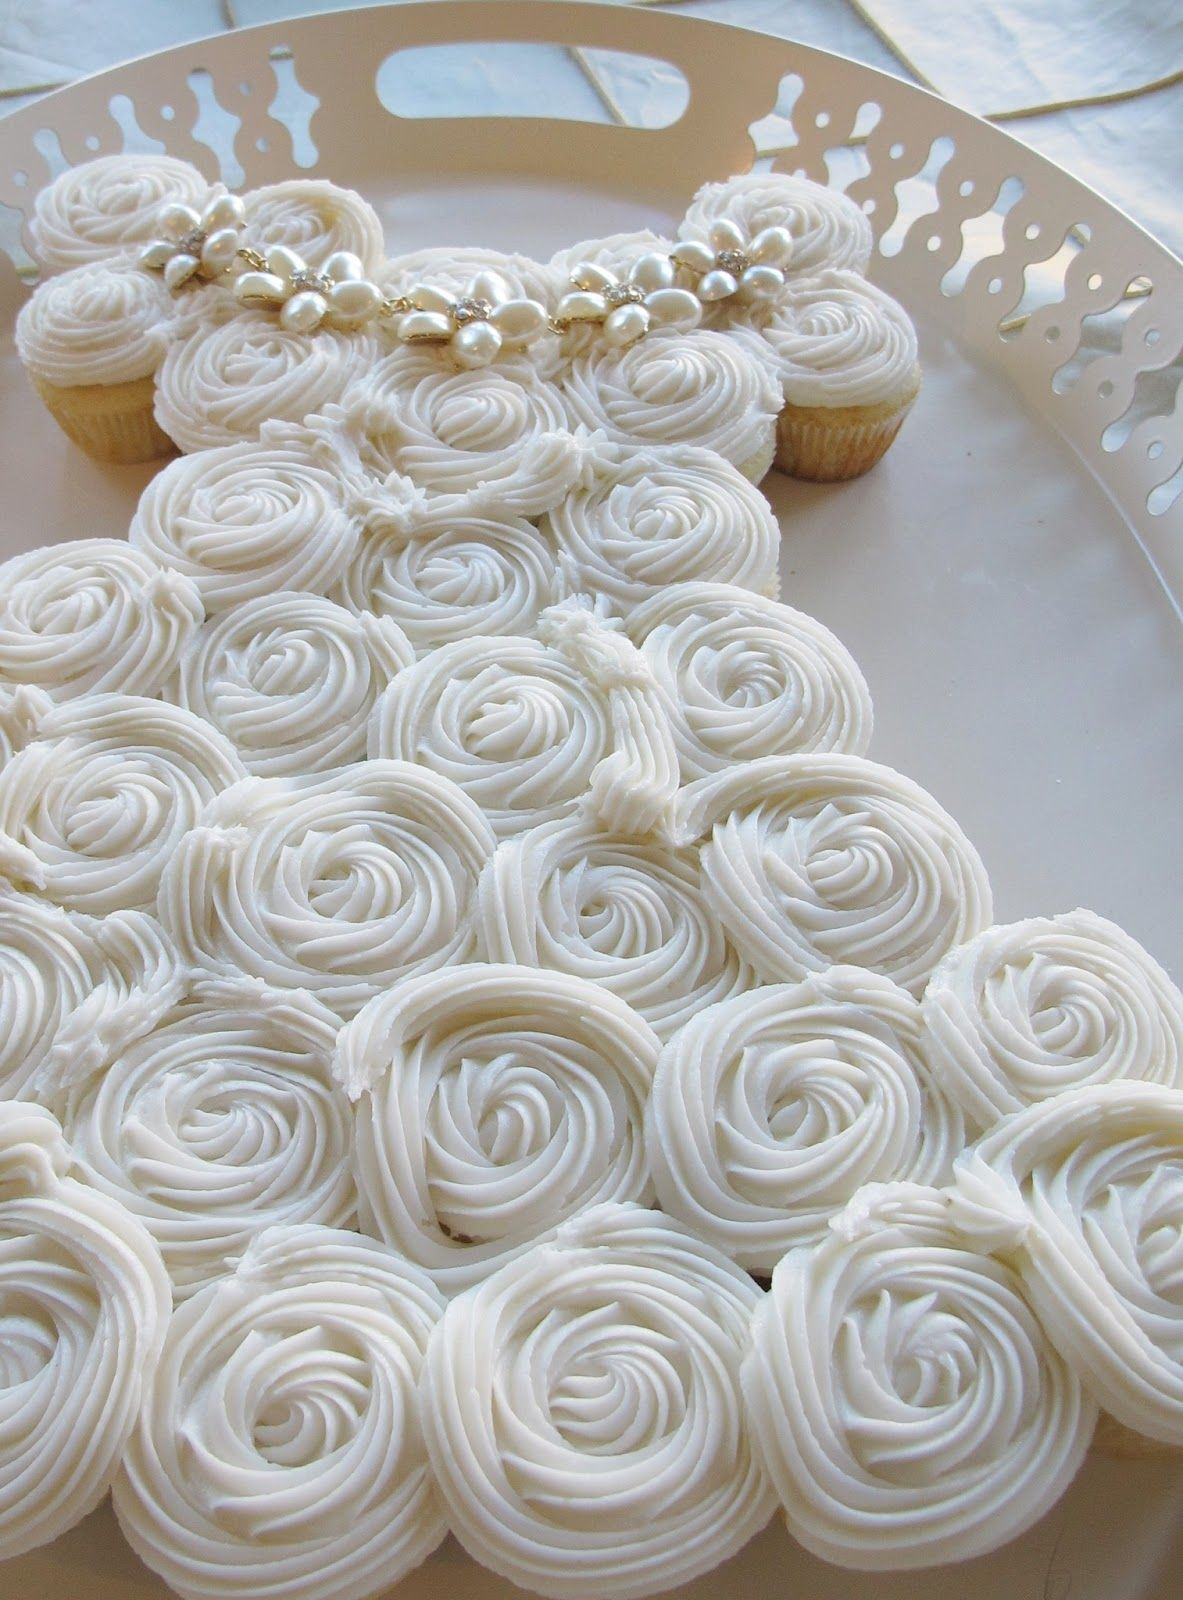 Cupcake Cake In The Shape Of A Wedding Dress For Bridal Shower Description From